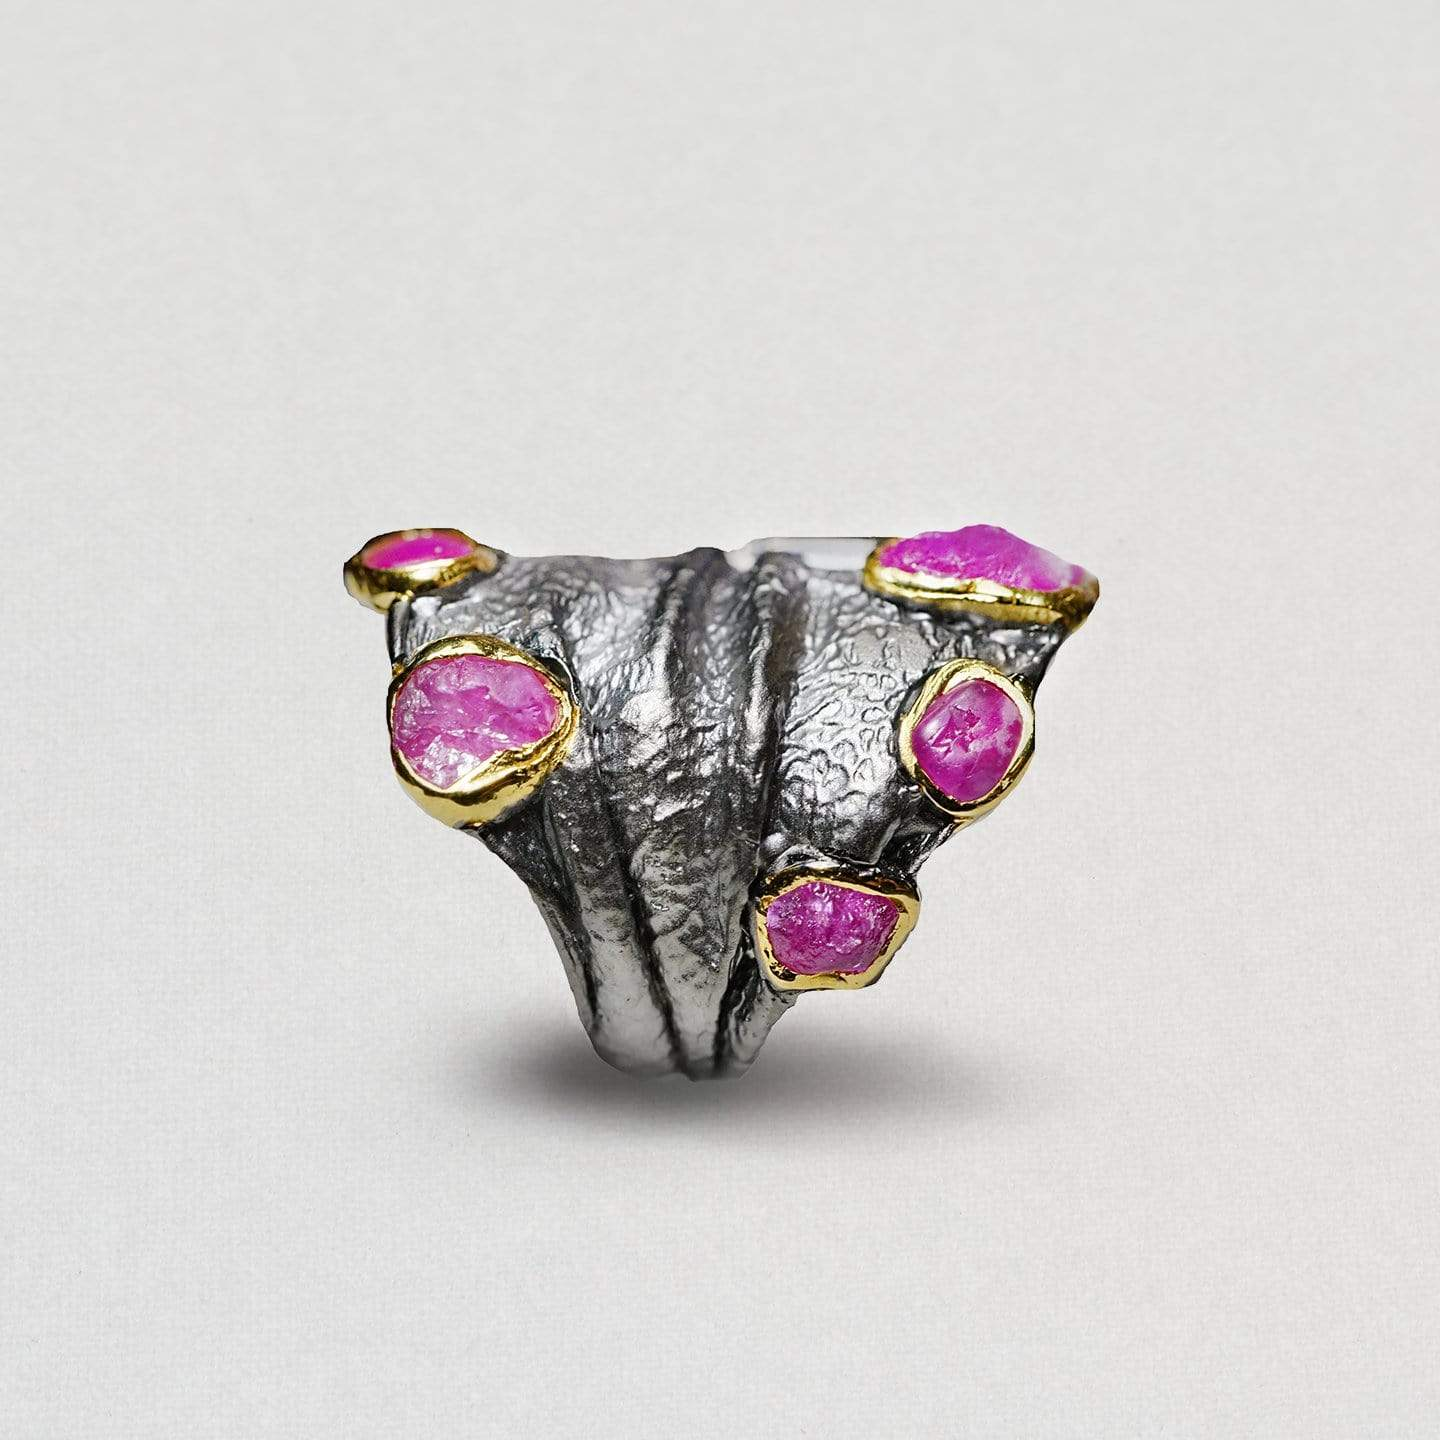 Almaith Ring, Gold, gray, Handmade, Rhodium, Ruby, spo-disabled, StoneColor:PinkRuby, Style:Everyday, Type:Jokers Ring